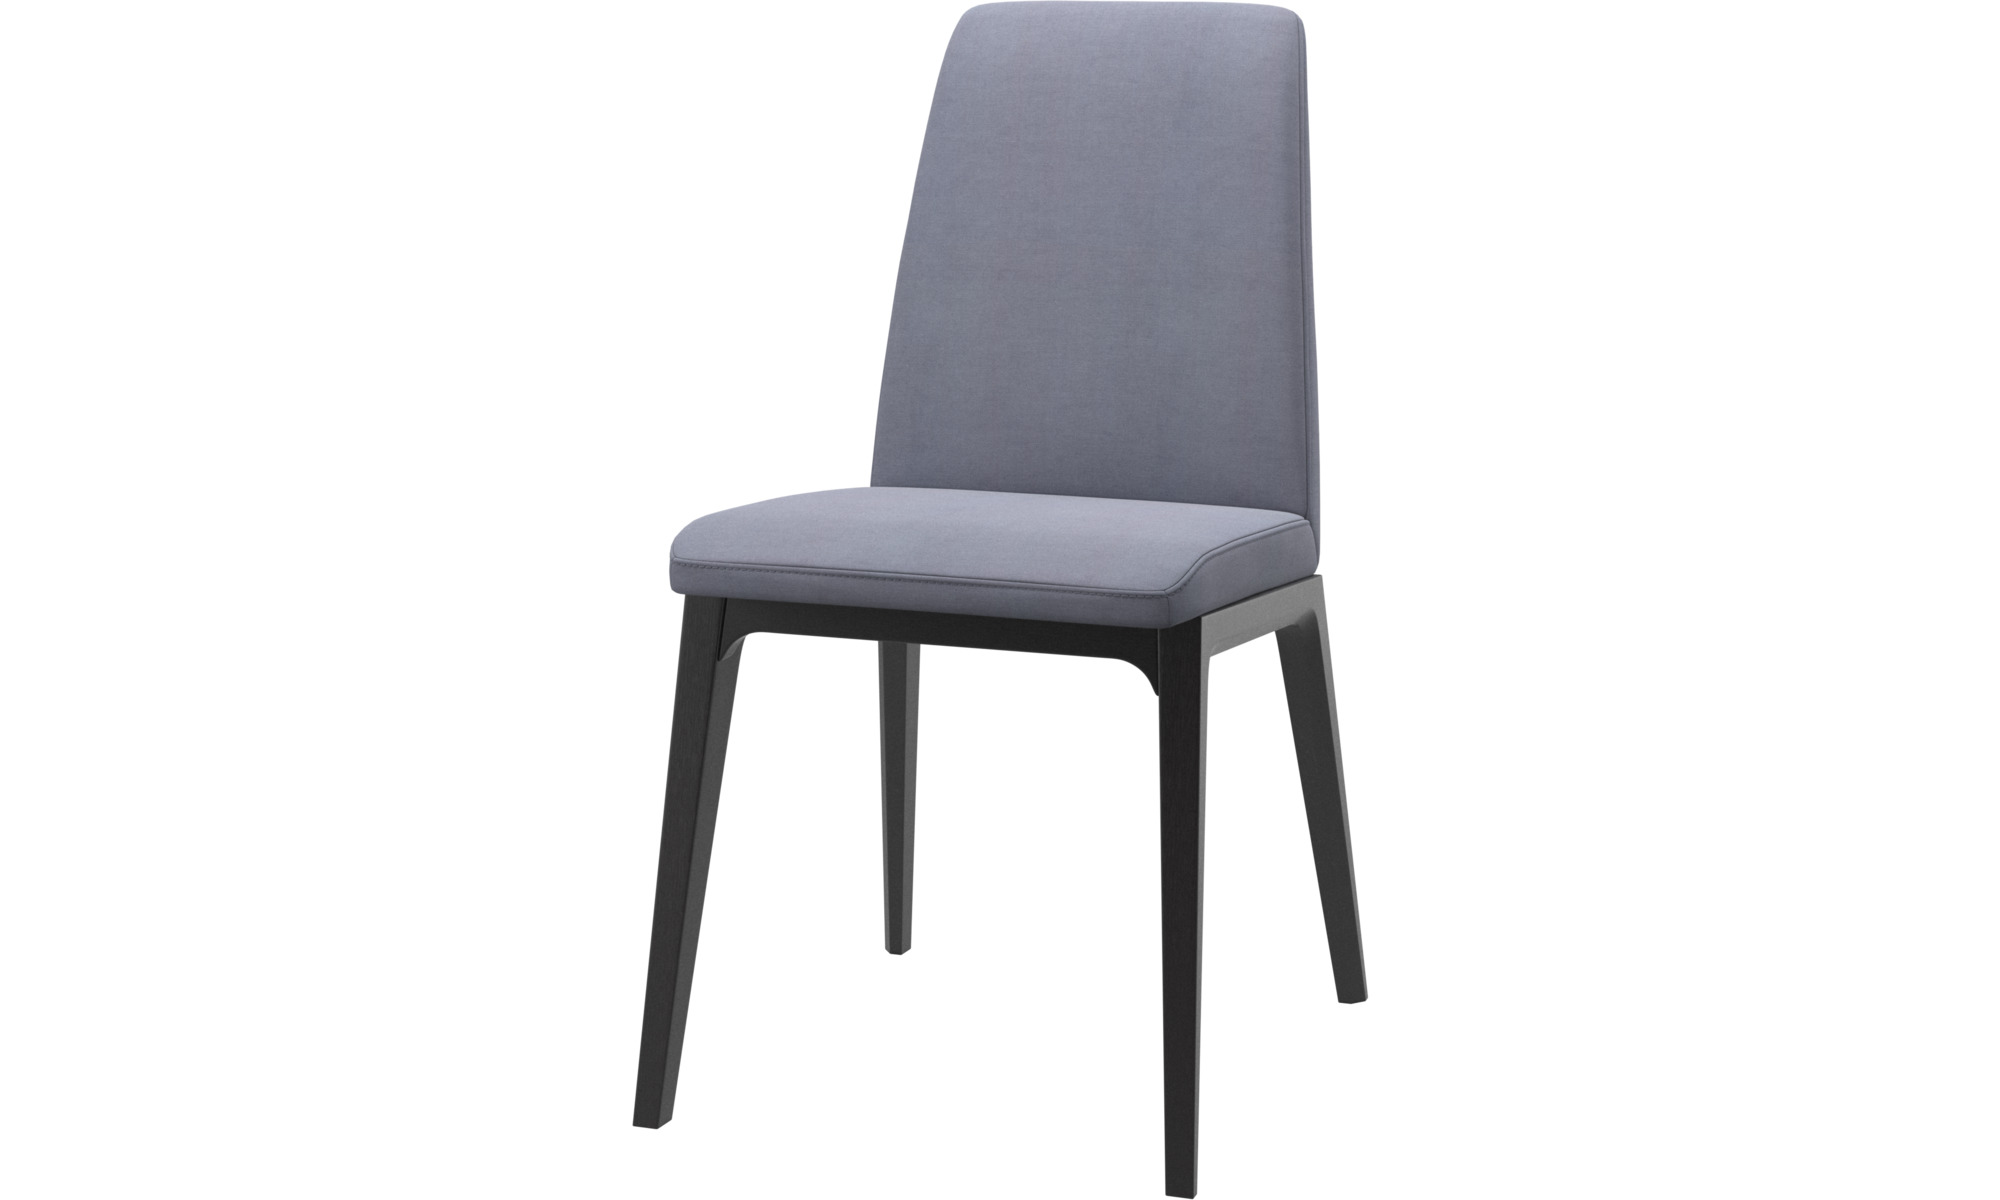 Dining chairs - Lausanne chair - Blue - Fabric